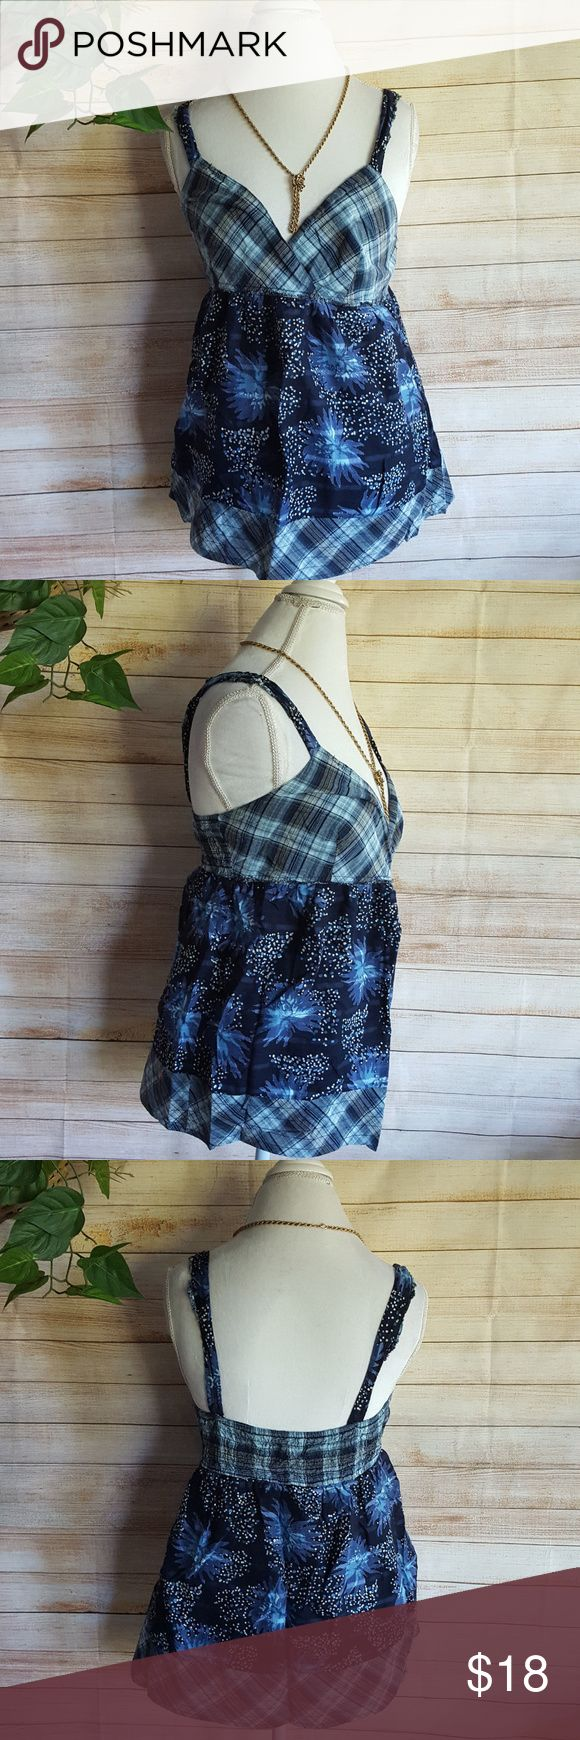 Calvin Klein Jeans Tank Top Cami Babydoll Blue L Calvin Klein Jeans Womens Tank Top Babydoll Cami Blue Sweetheart Neckline Sz L  Flawless pre-owned condition!  A lovely addition to your wardrobe.  Brand:  Calvin Klein Jeans  Size:  Large  Style:  Camisole, top with straps, V-neck, stretchy panel across the back  Pockets:  No  Fabric:  100% cotton  Care:  Machine wash cold  Features:  Lined.  Measurements (all taken with garment flat, unstretched)  Bust: 16.5  inches Calvin Klein Jeans Tops